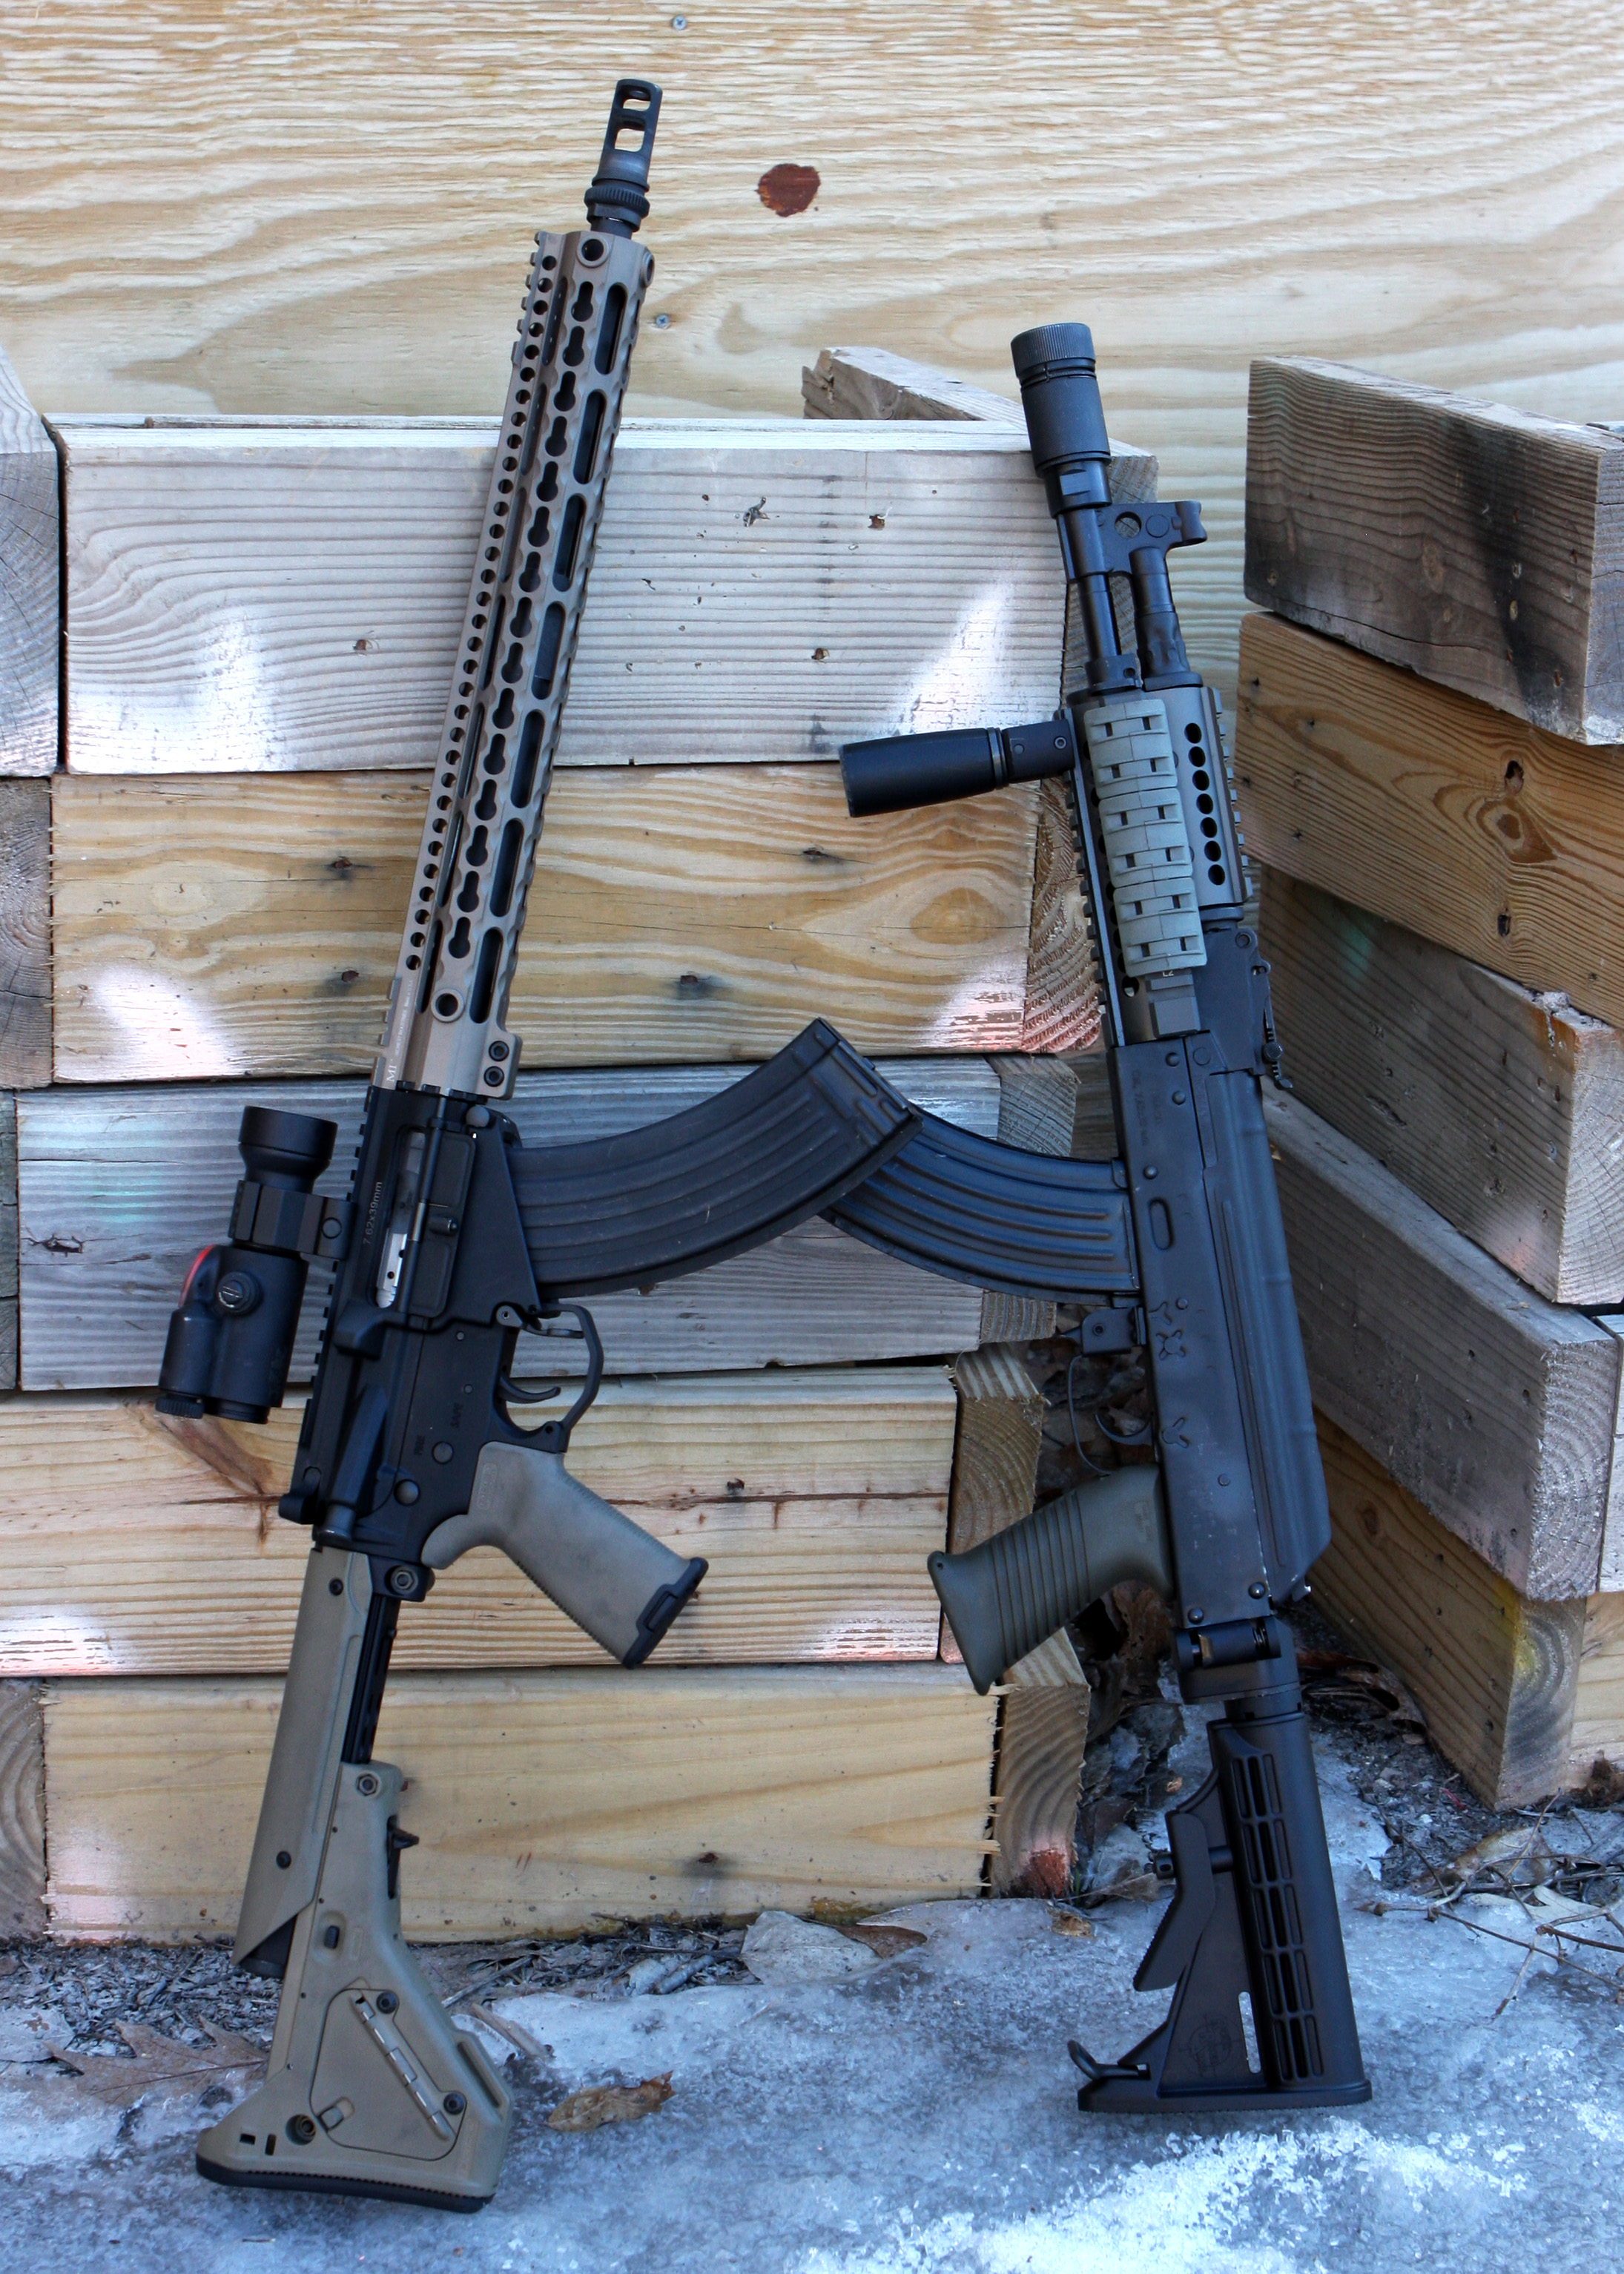 The Ak on the right is a Registered SBR Draco.